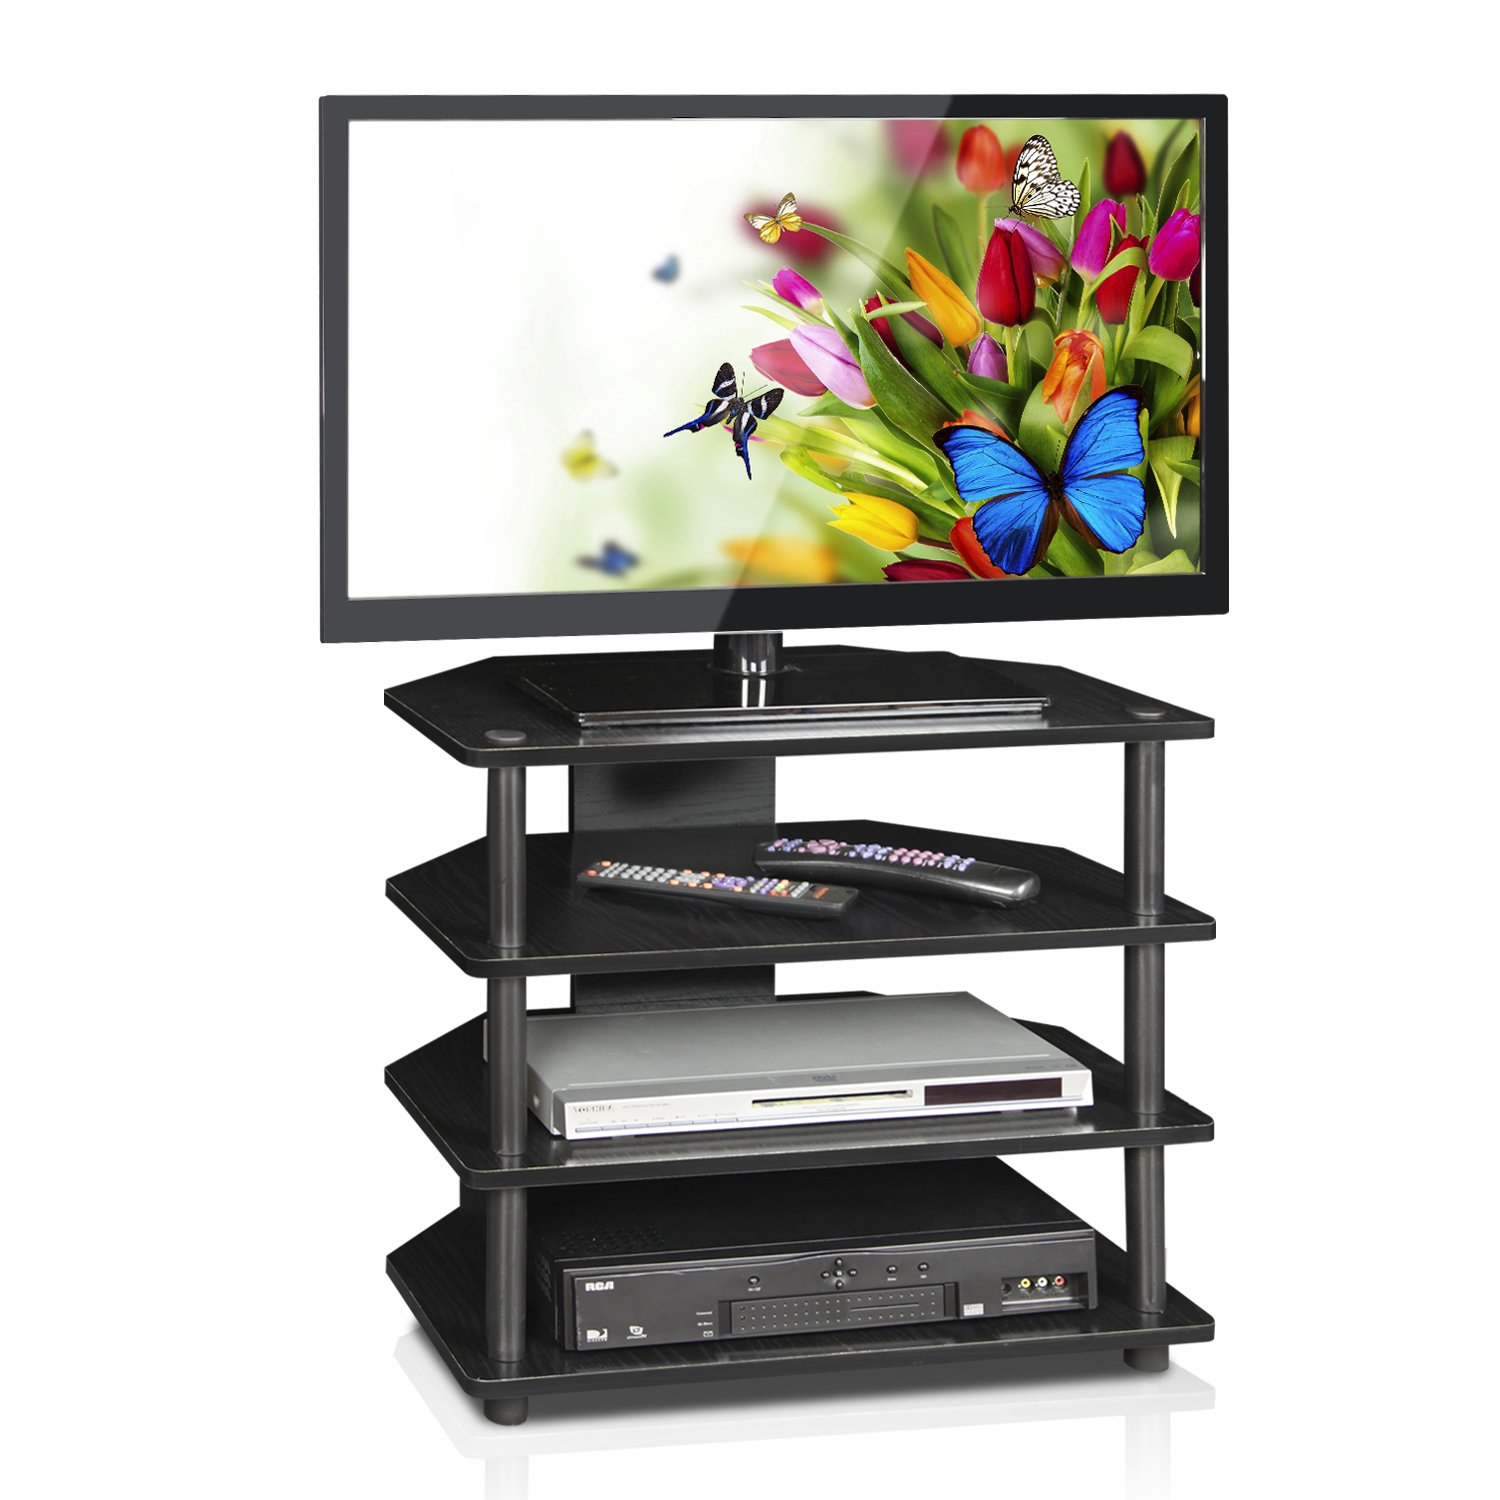 Game console shelf tall tv stand corner entertainment center wooden display set